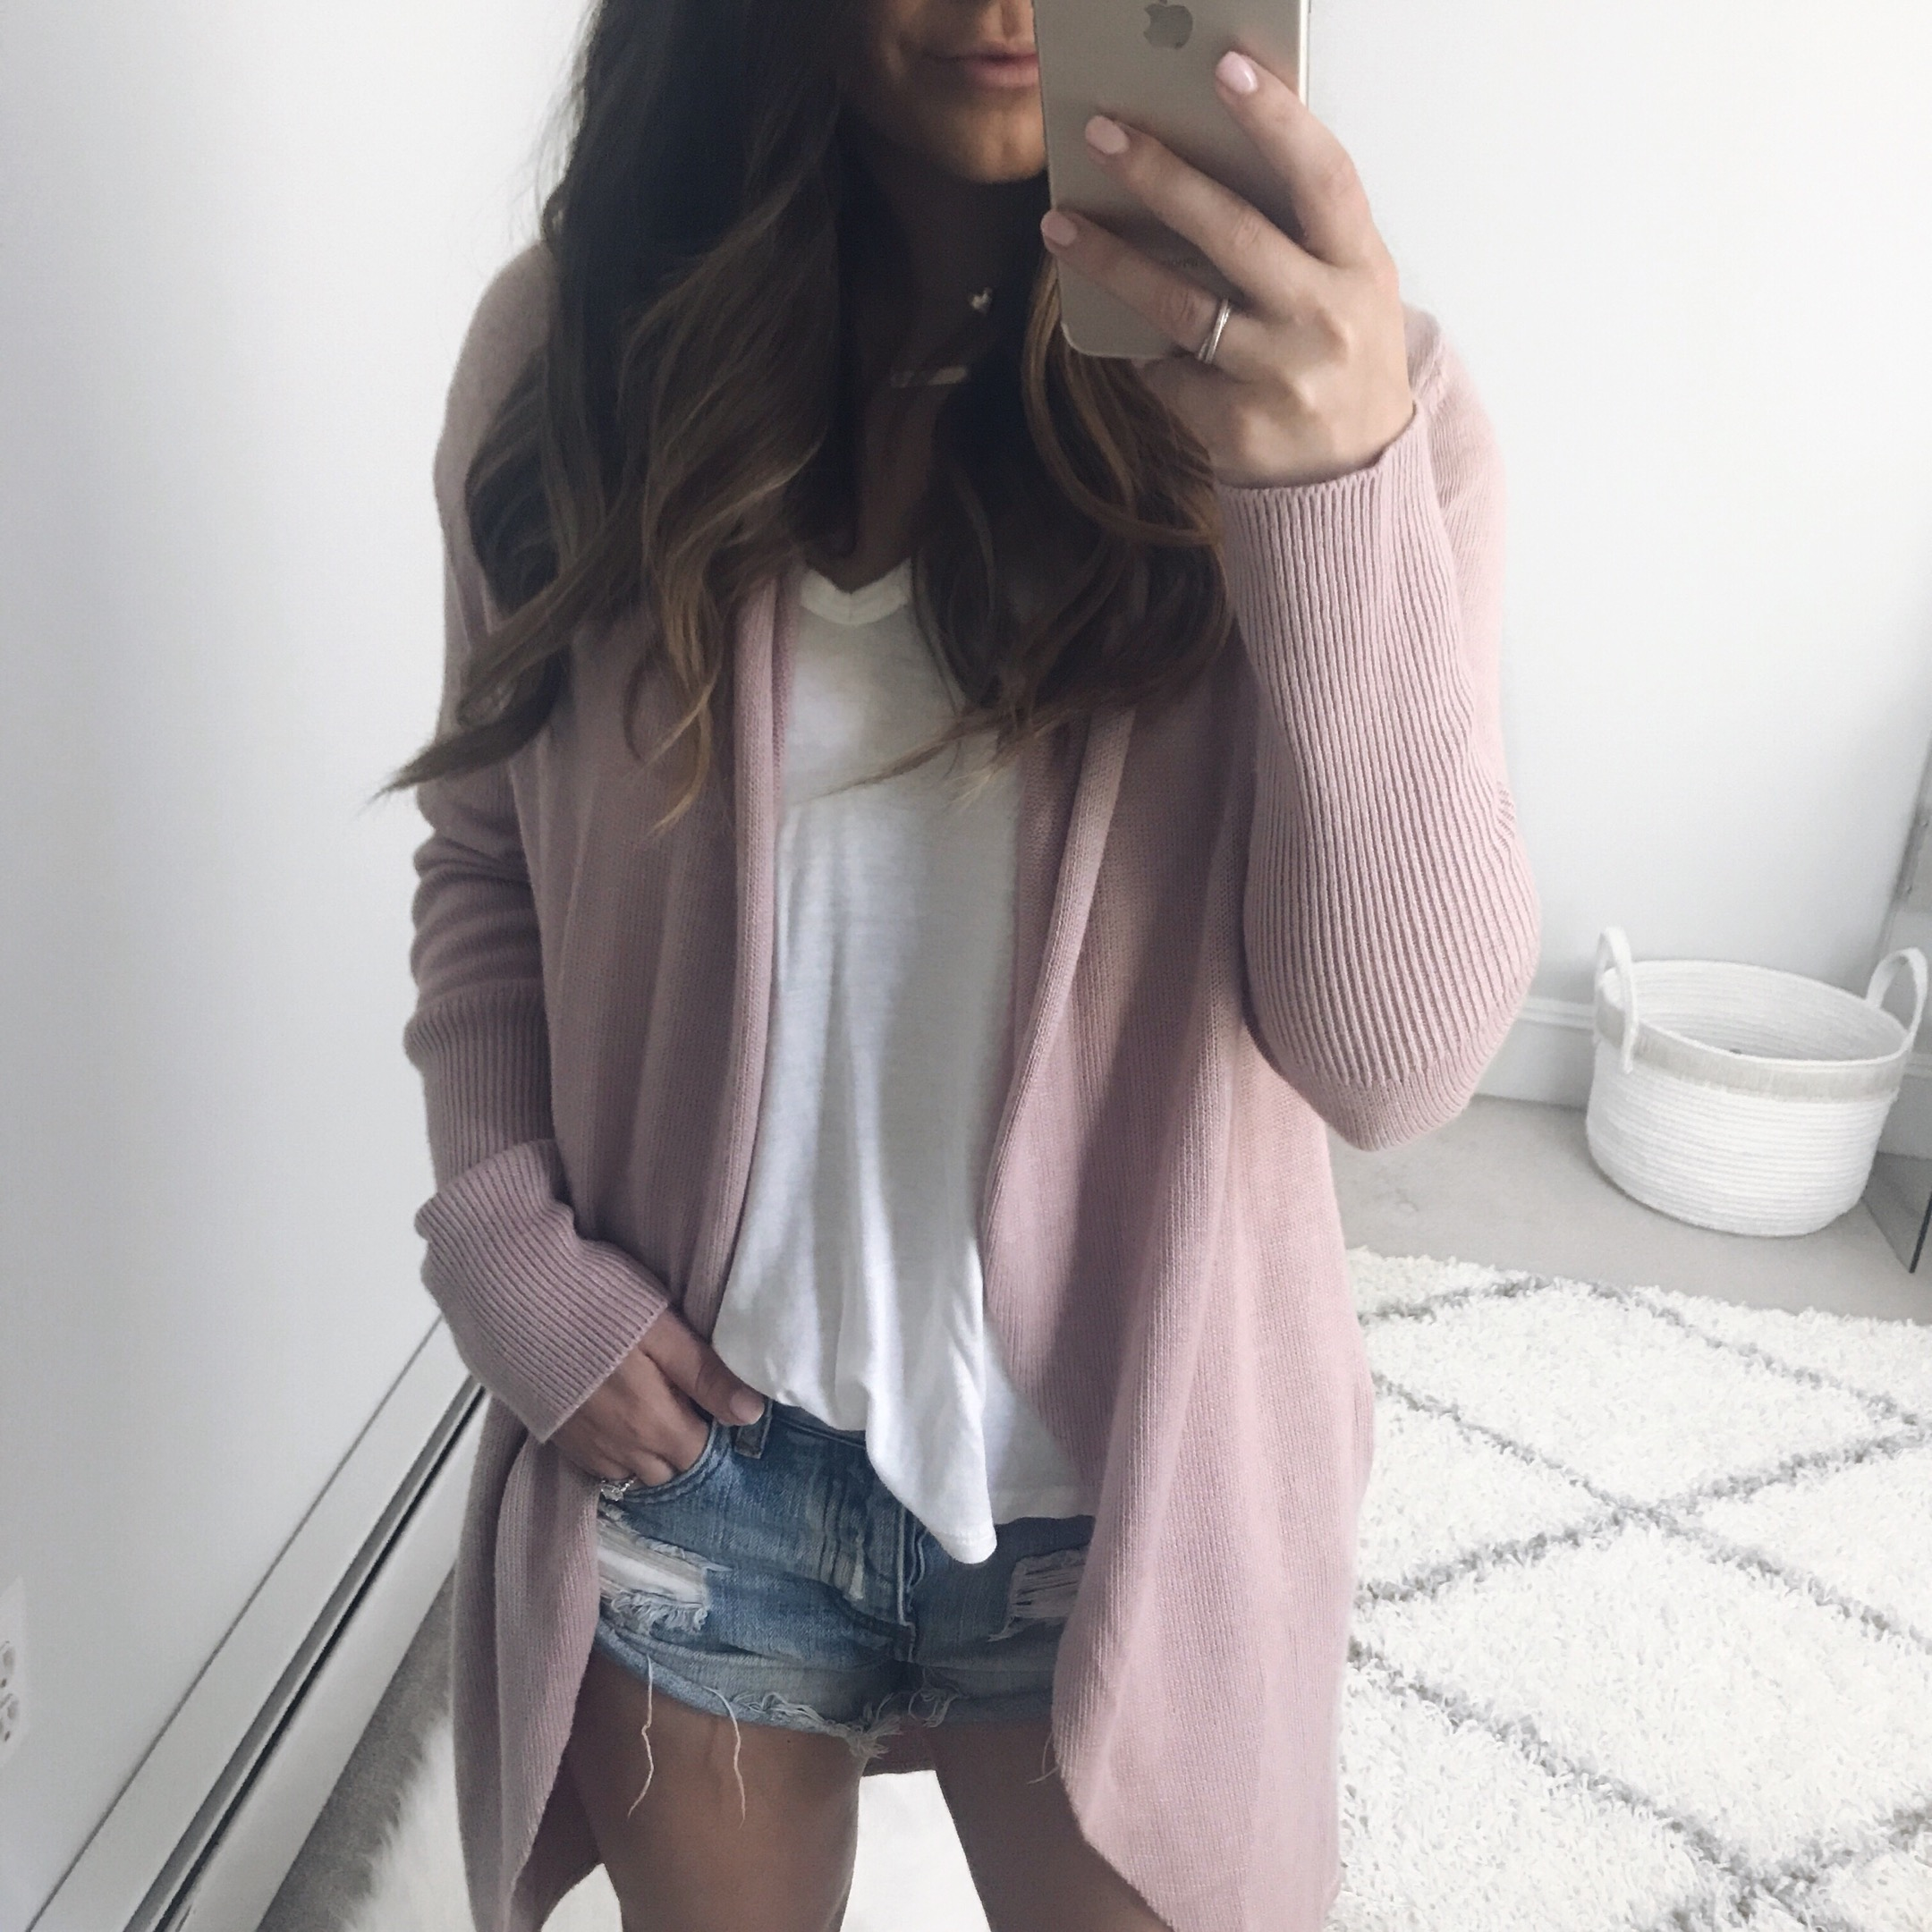 leith cardigan / lush v neck / one teaspoon shorts / fall transition outfit idea / outfit inspiration